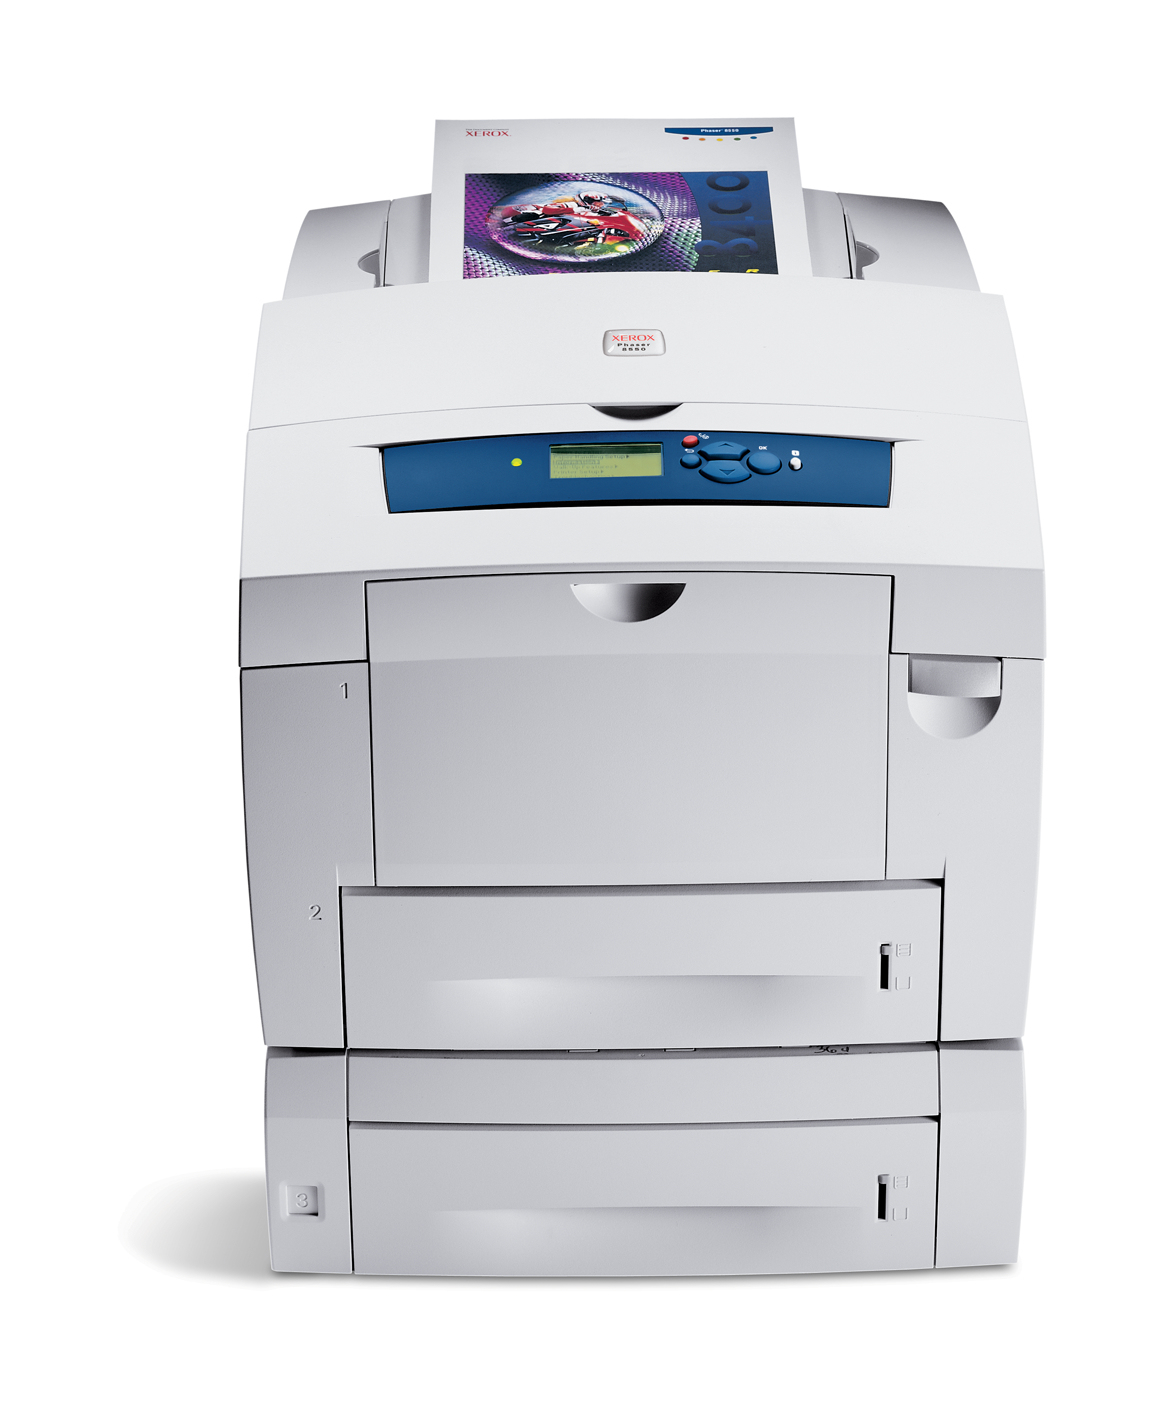 Xerox Phaser 8550 ADT Printer 8550_ADT - Refurbished